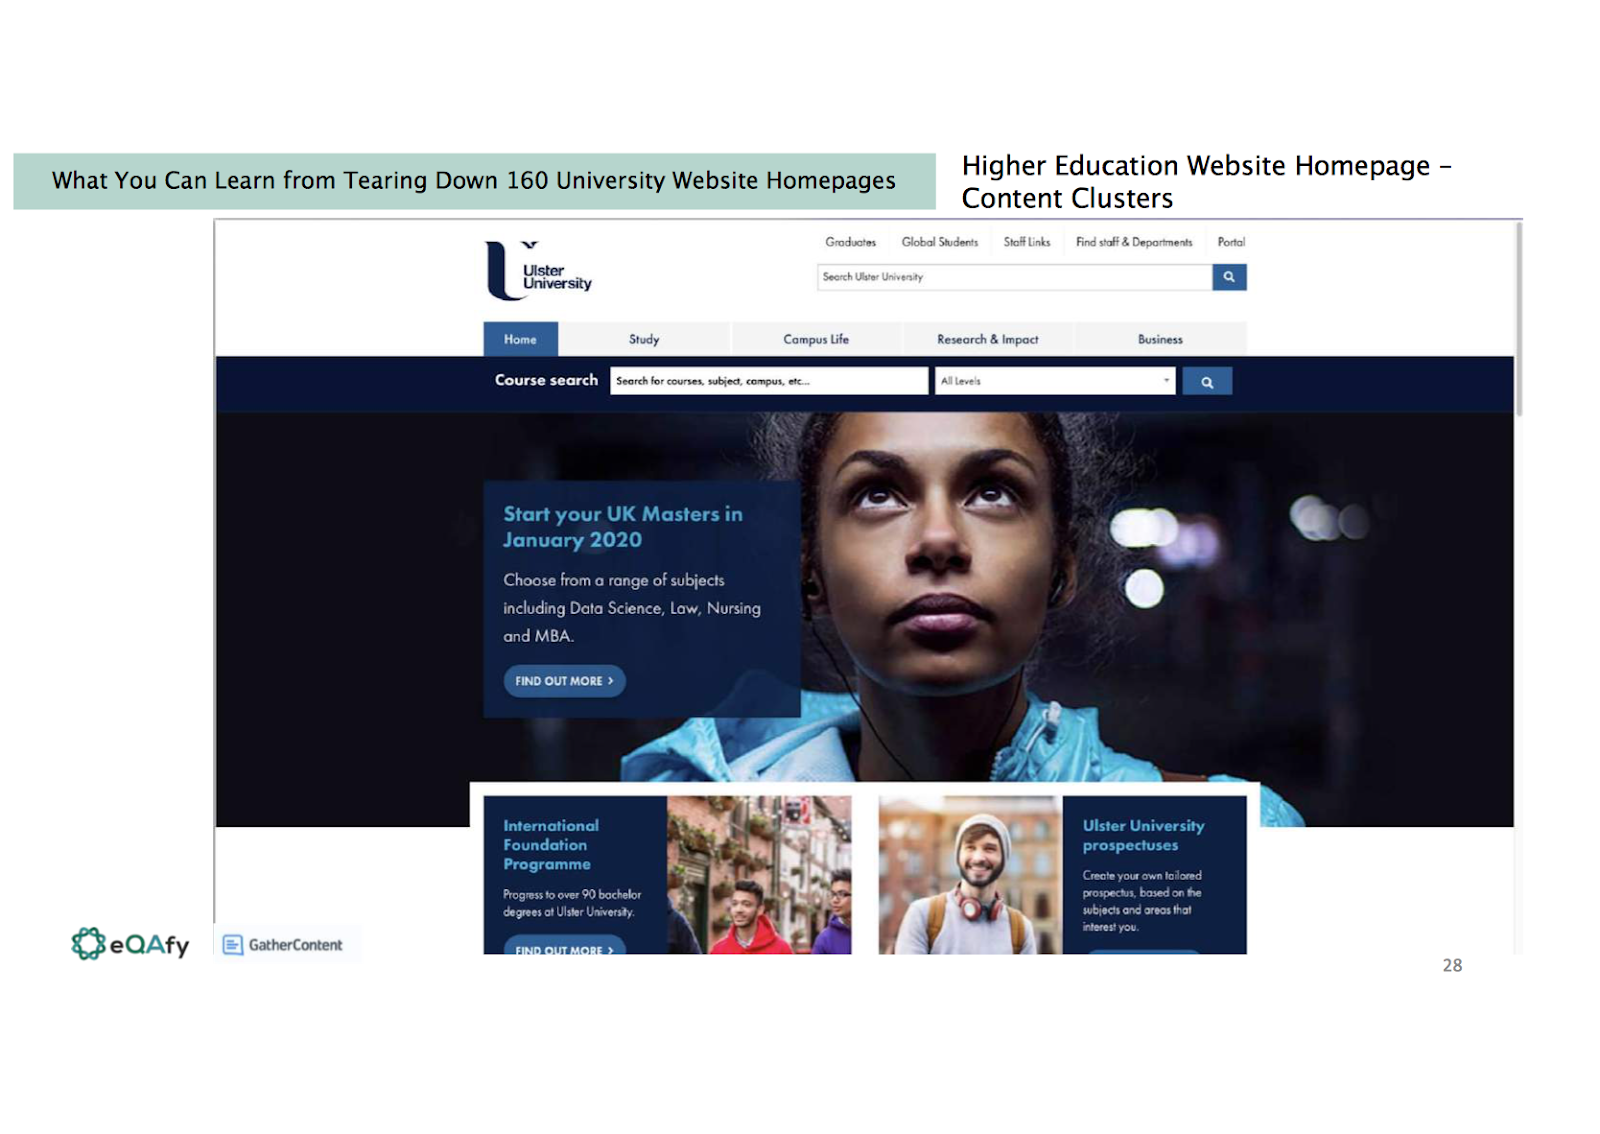 slide shows the Ulster university homepage which clearly shows the typical layout of a homepage.